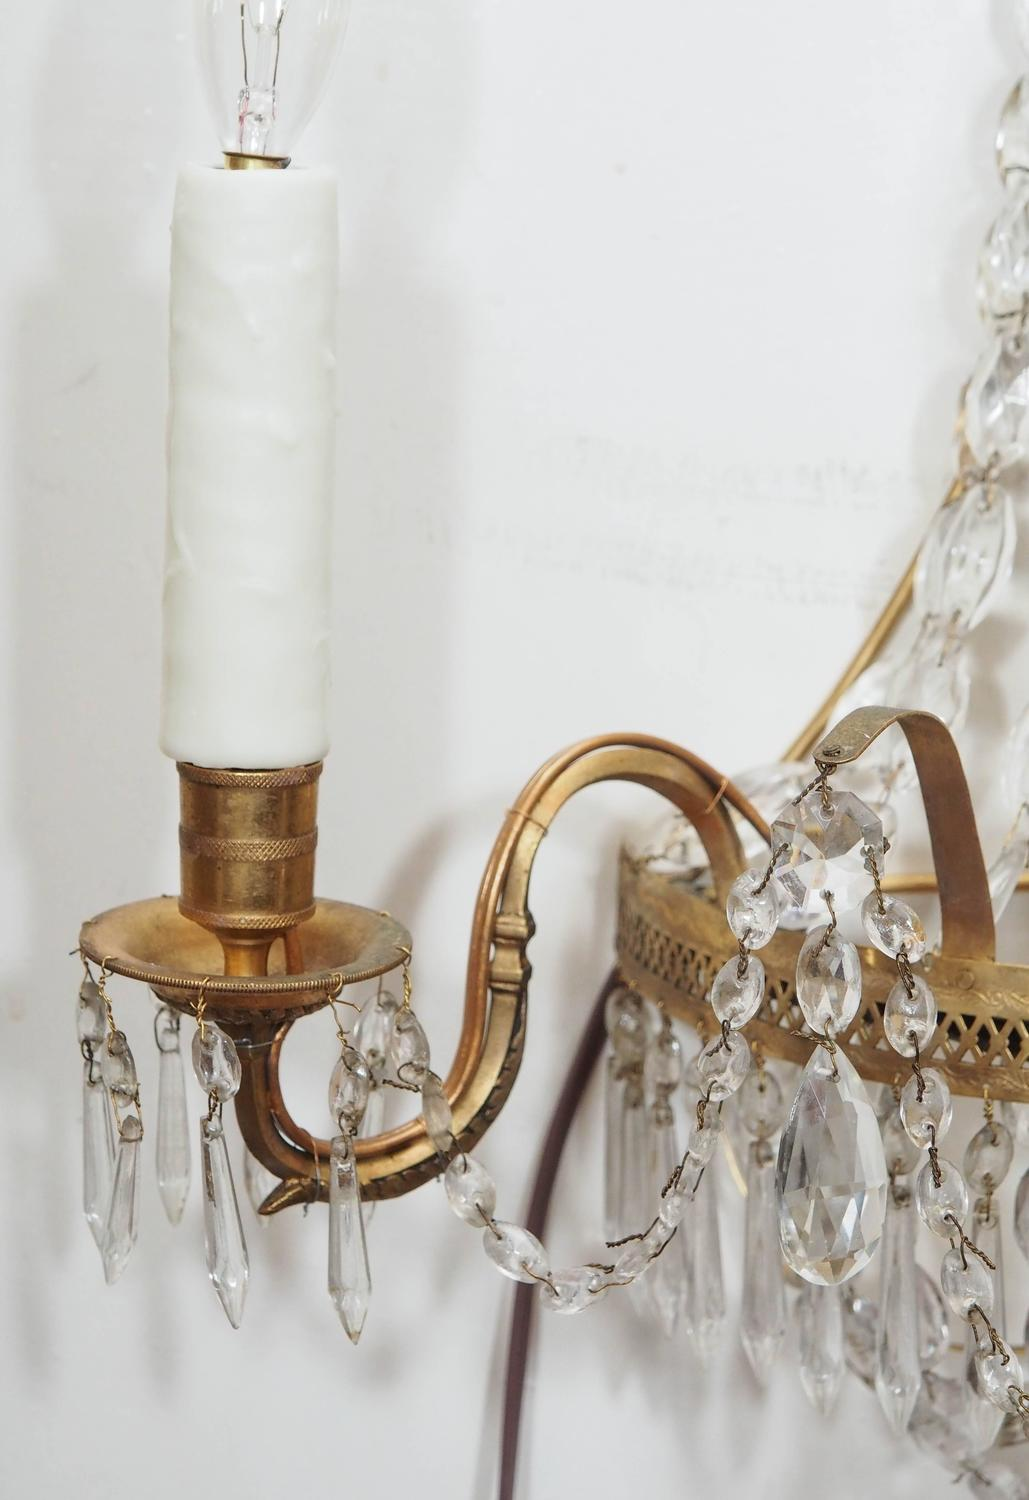 Pair of Italian Empire Style Brass and Crystal Wall Sconces at 1stdibs